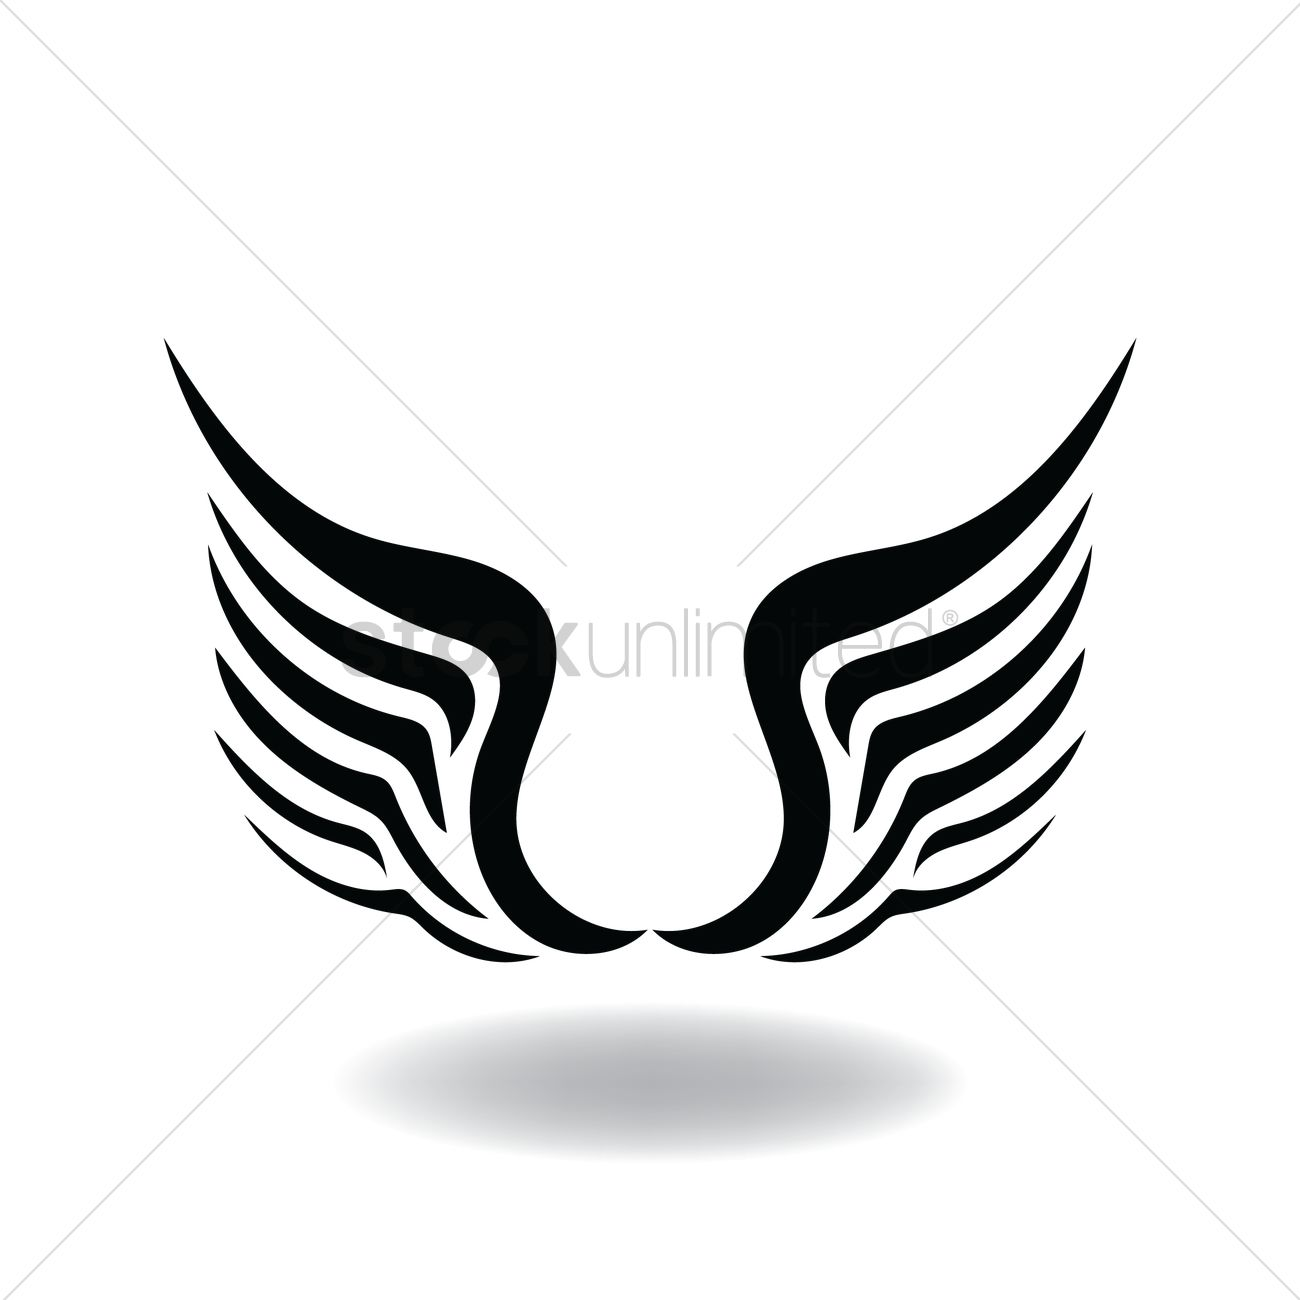 abstract angel wings vector image 1503190 stockunlimited angel wings vector art angel wing vector free download